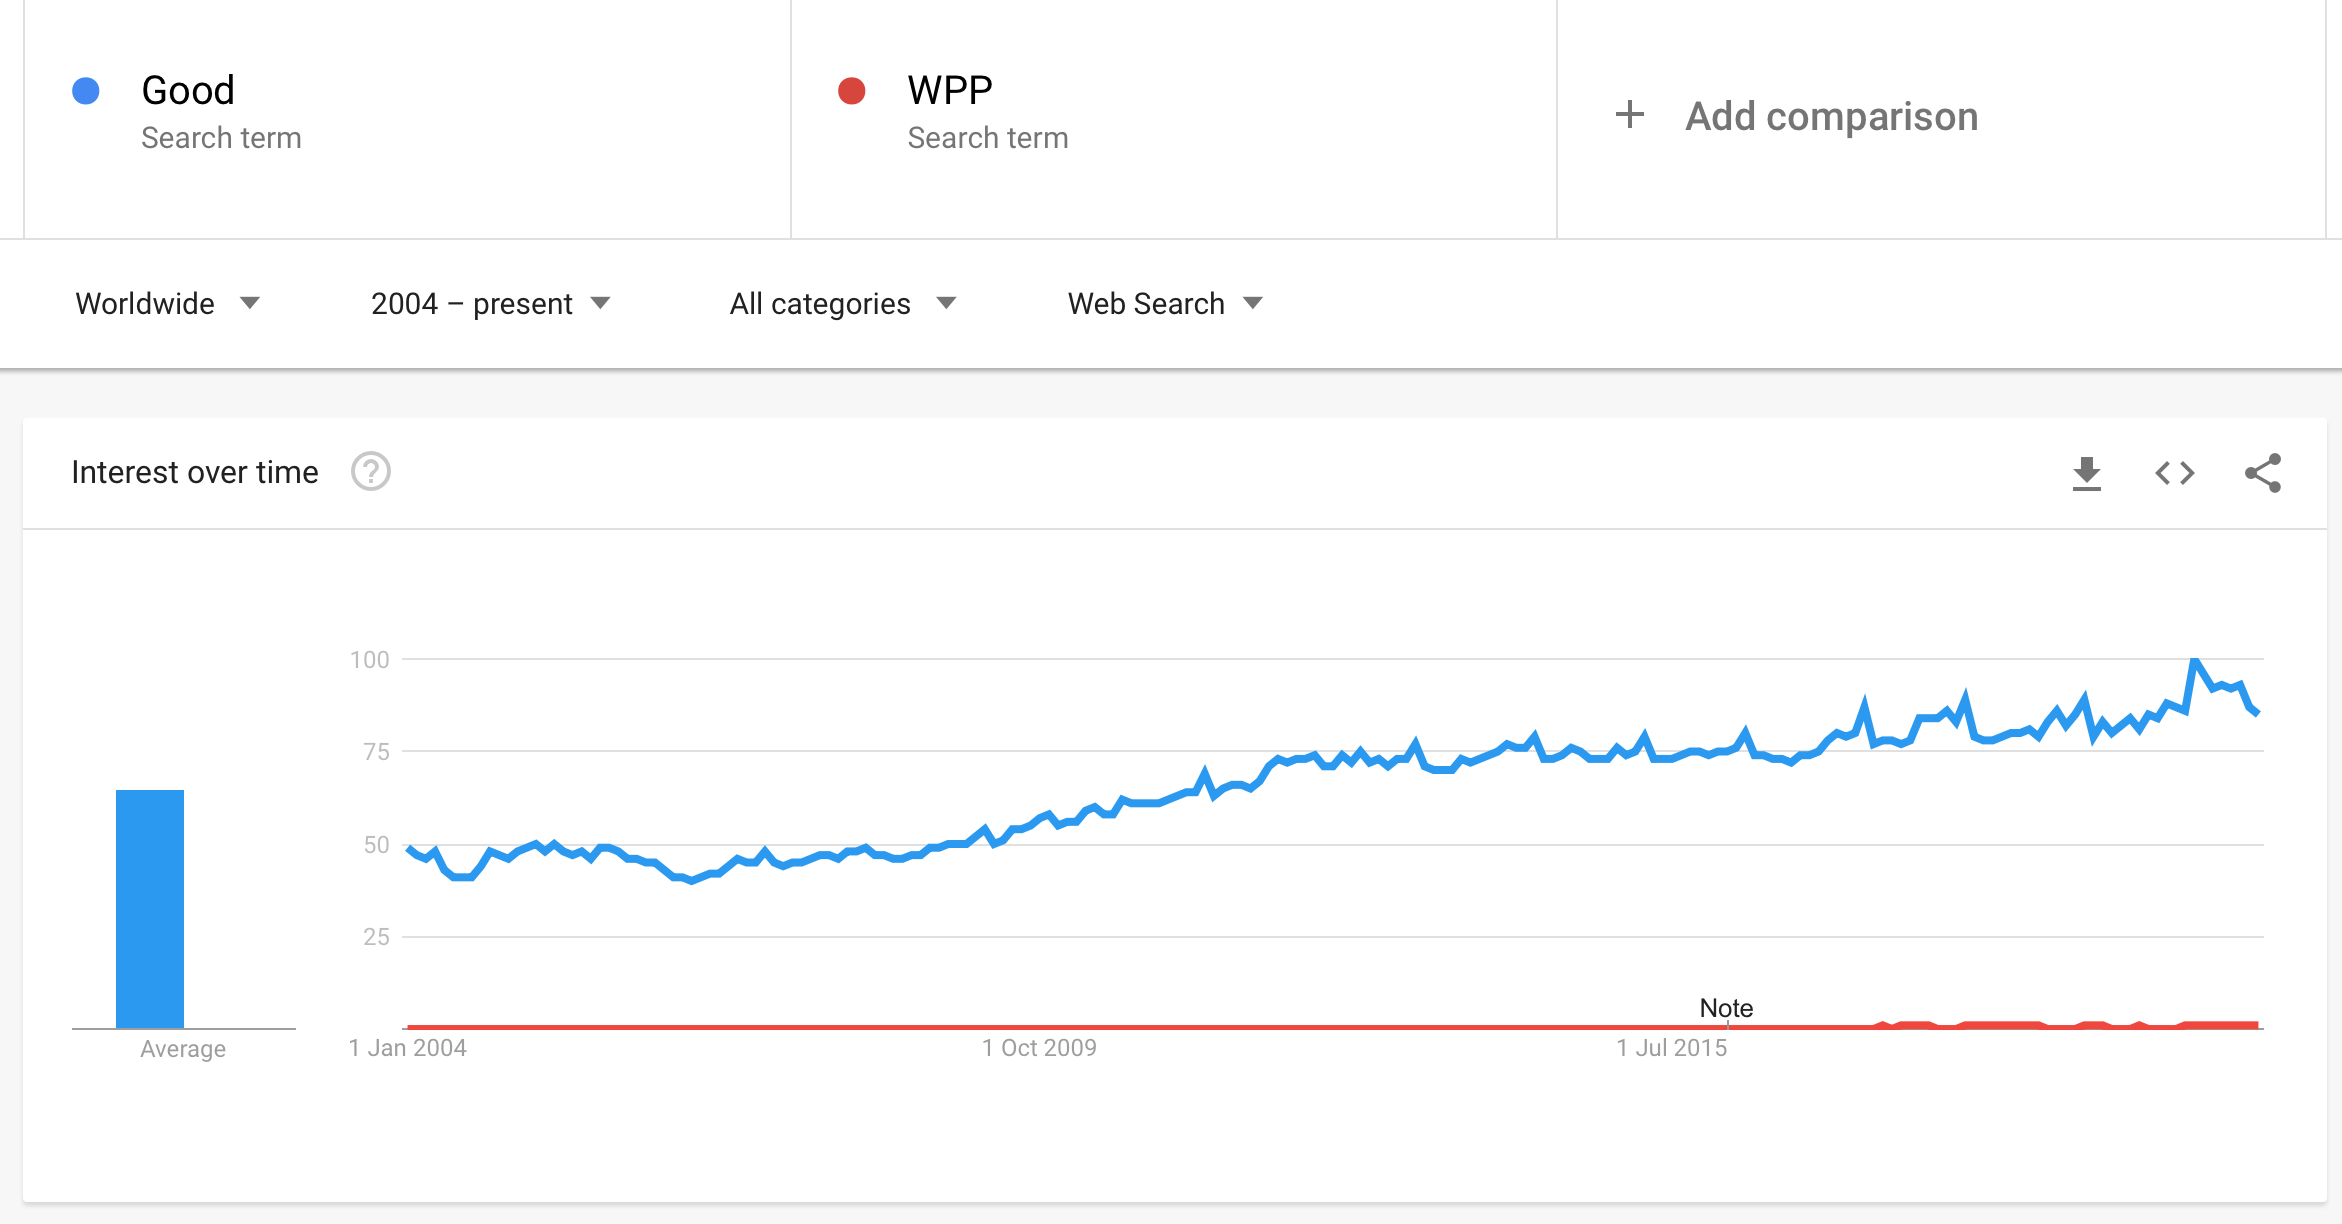 WPP Good Share of Search